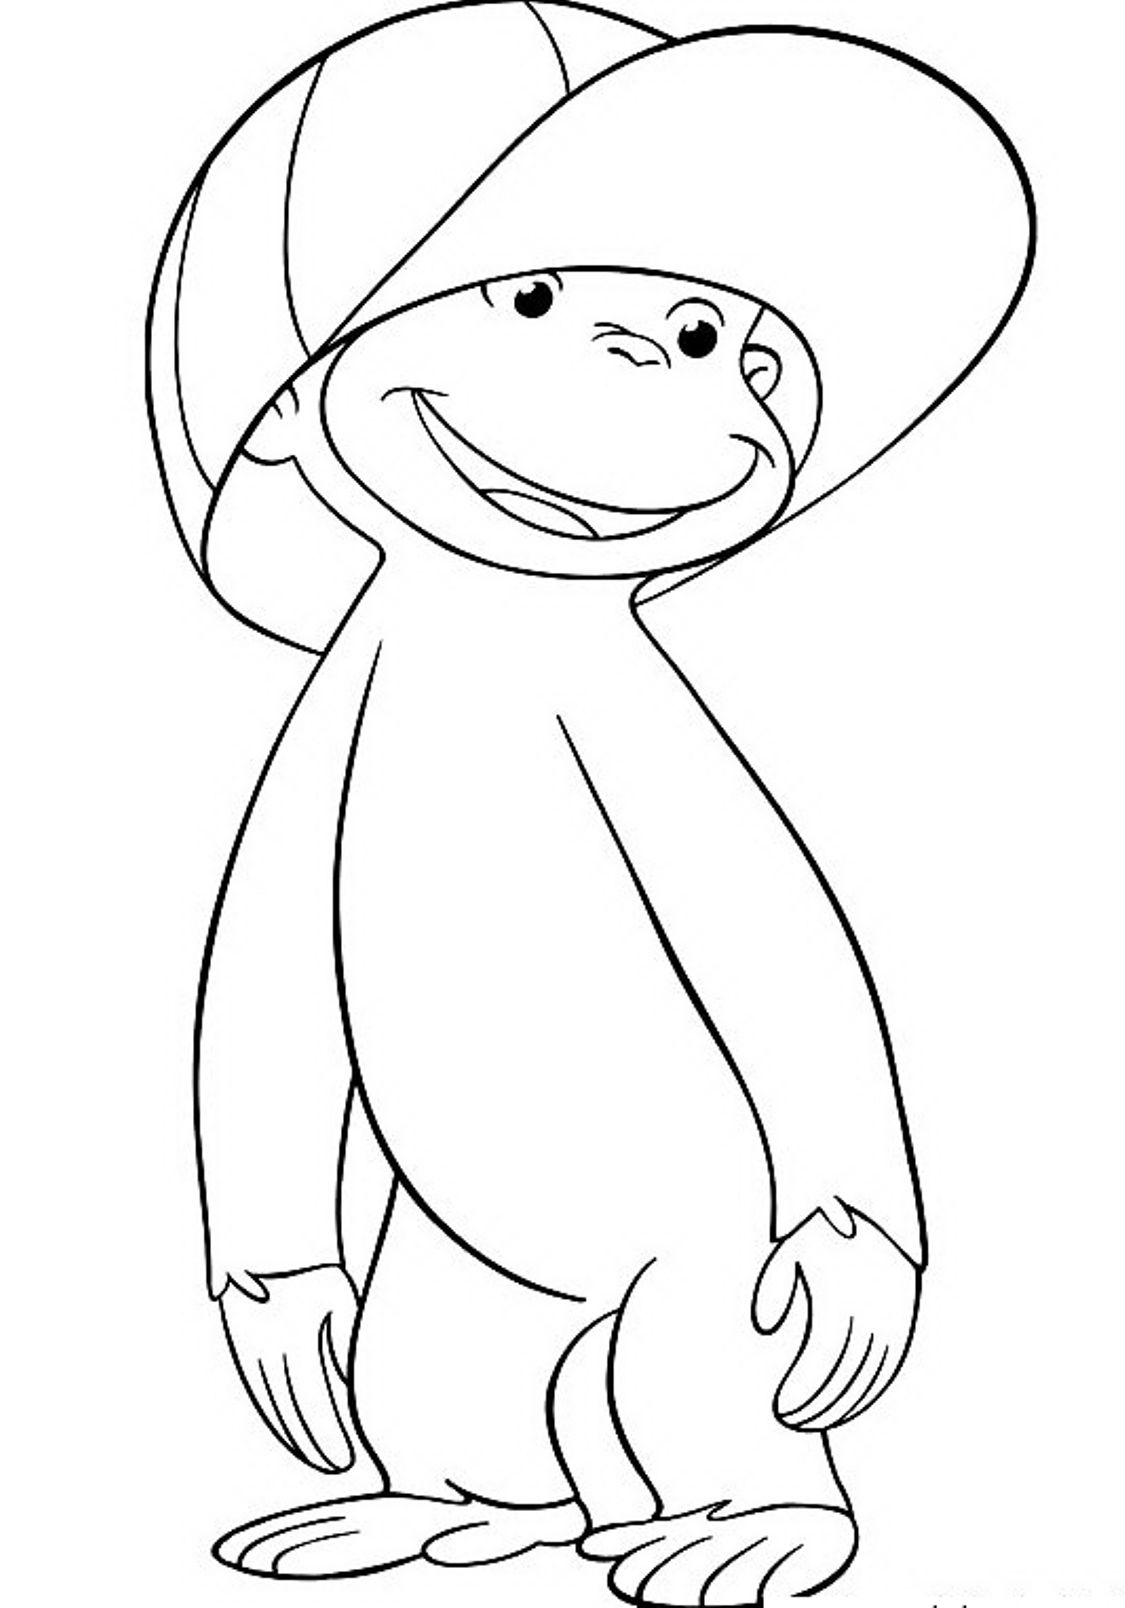 wearing hat curious george coloring pages | R | Pinterest